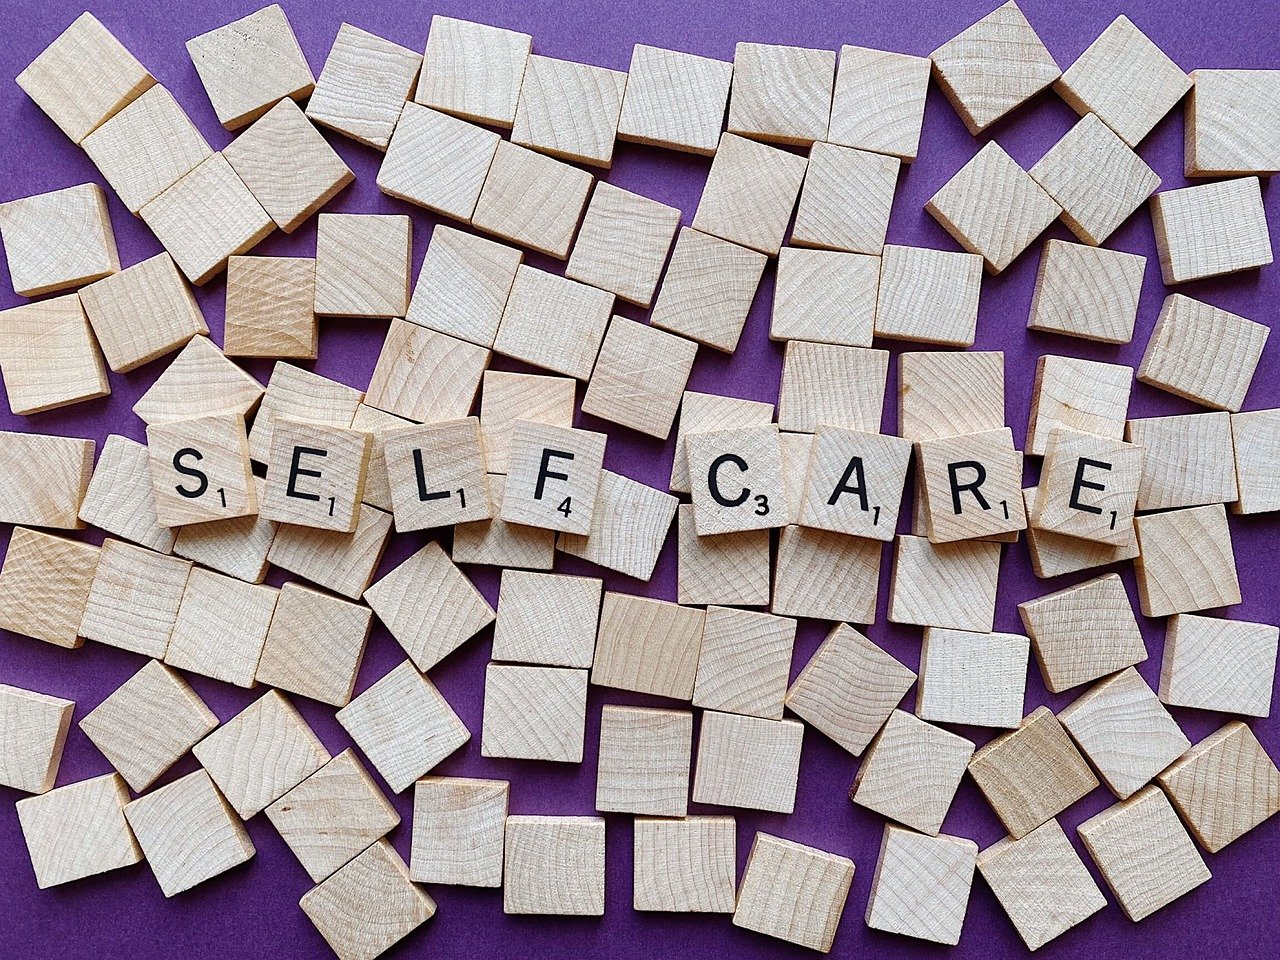 Self care can make you more productive